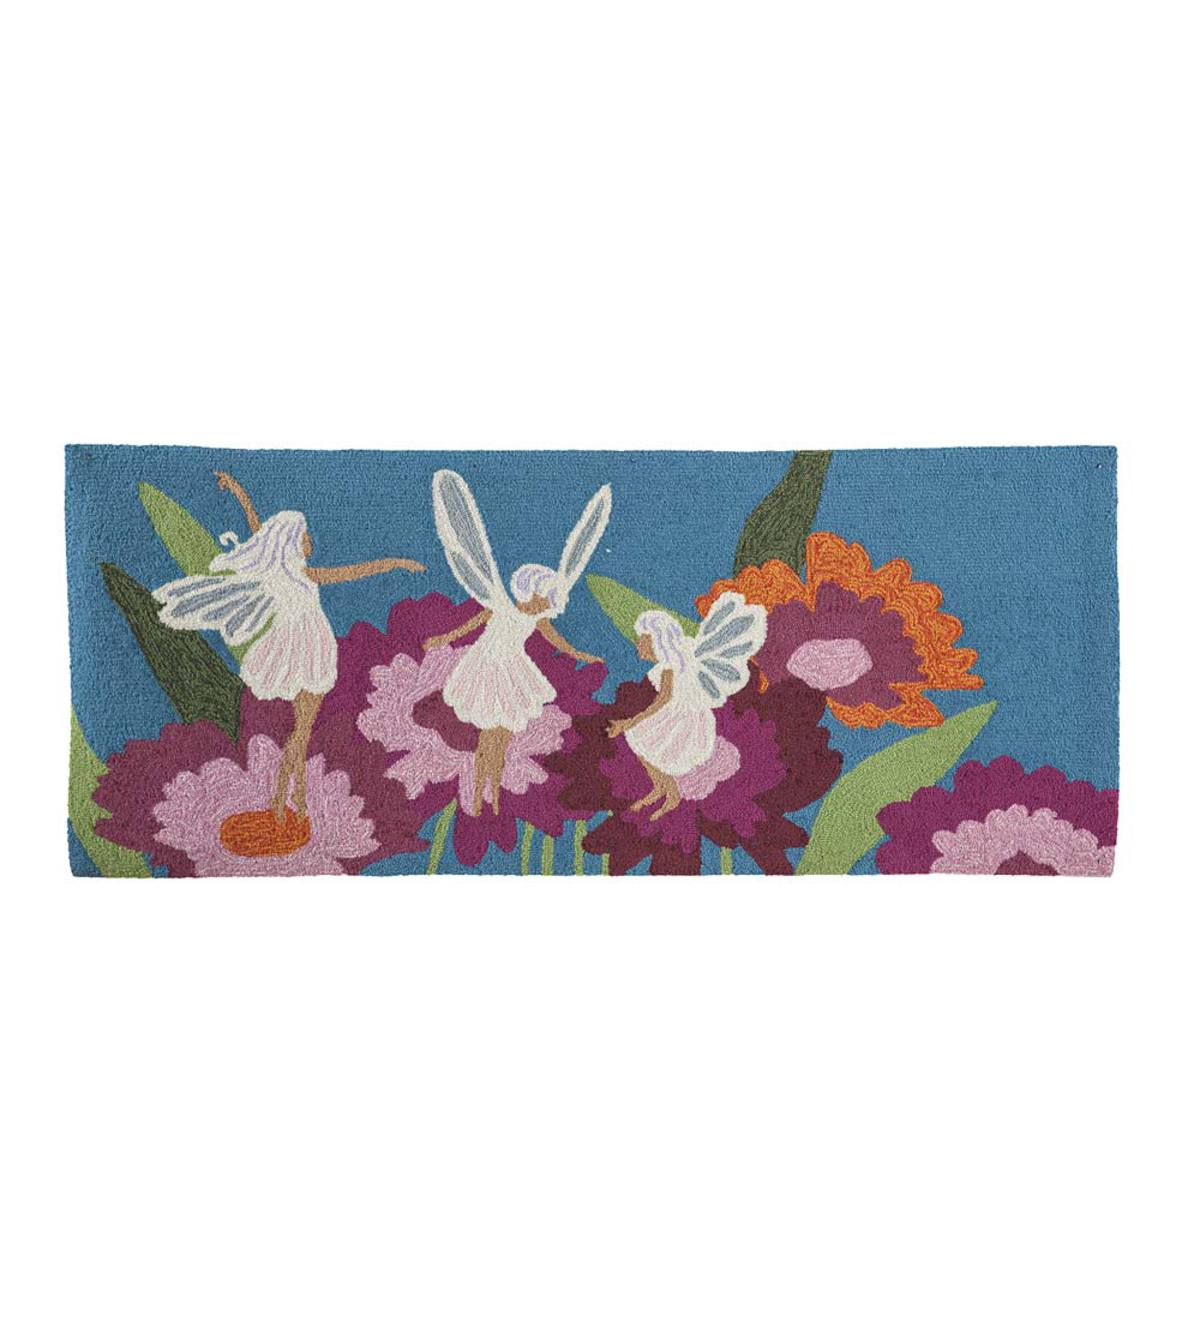 Indoor/Outdoor Fairy-Themed Hand-Hooked Carpet Runner